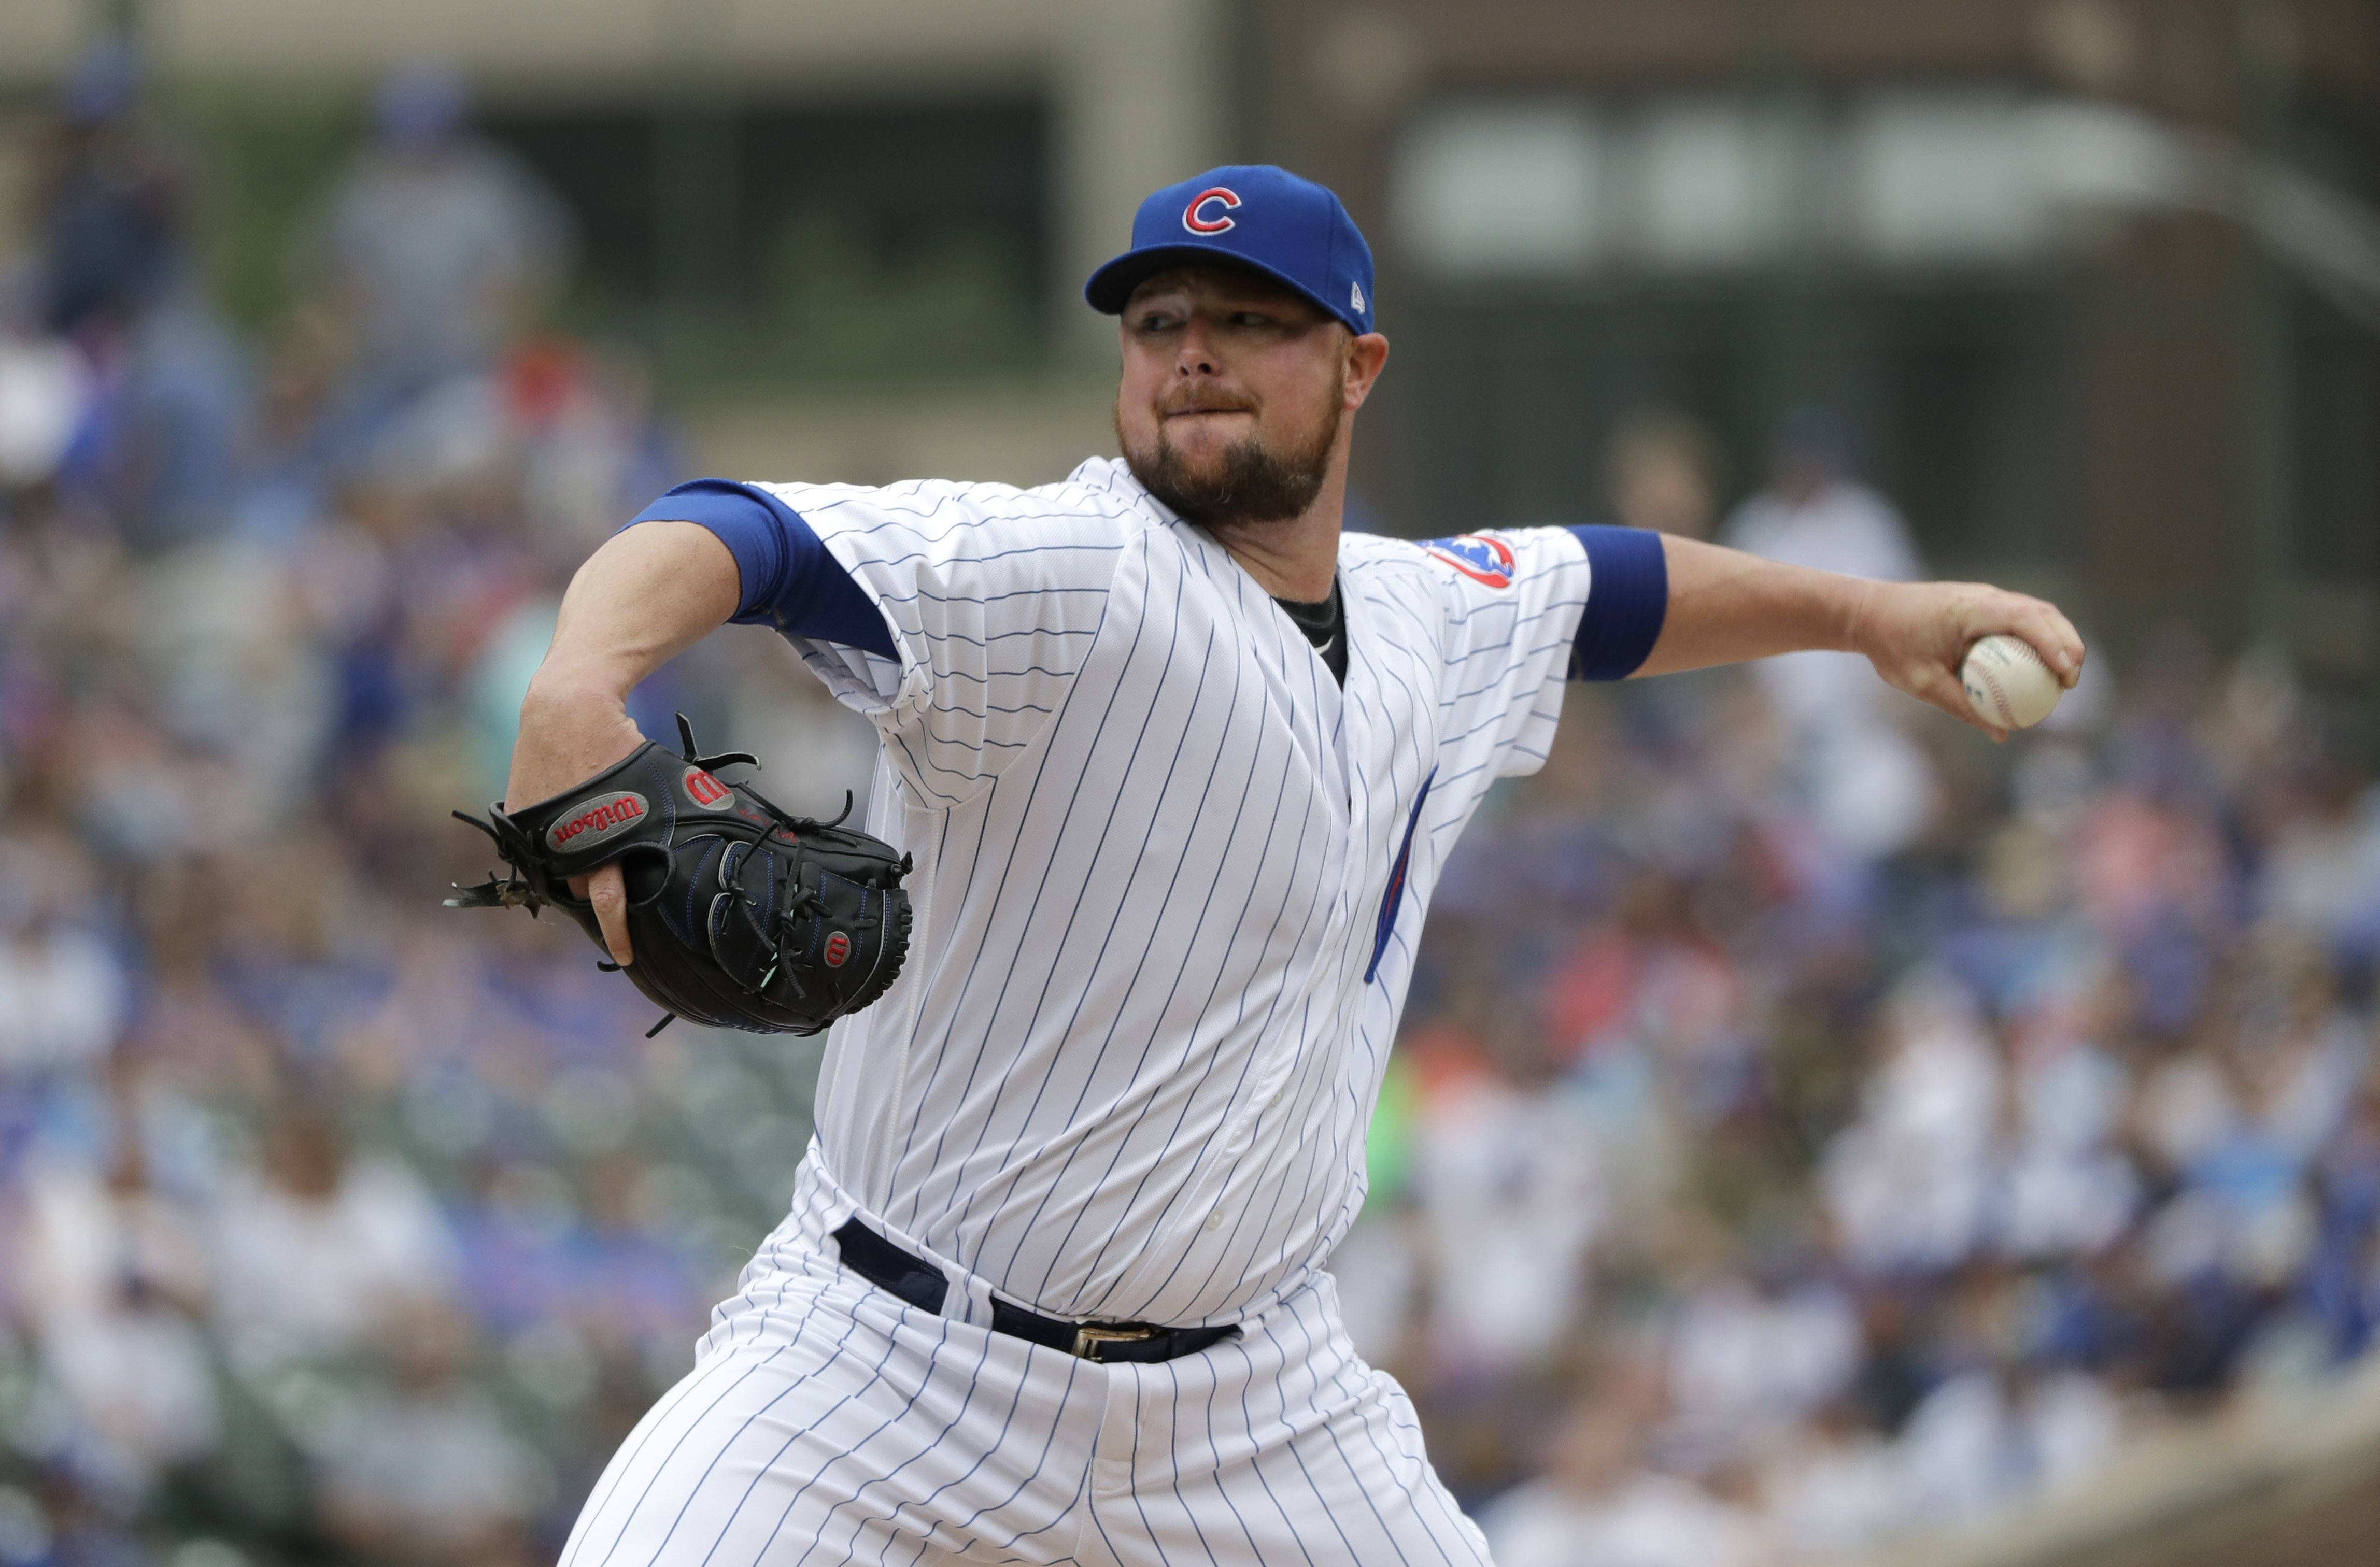 Chicago Cubs starting pitcher Jon Lester tossed 7 shutout innings to help beat the Los Angeles Dodgers on Wednesday at Wrigley Field.